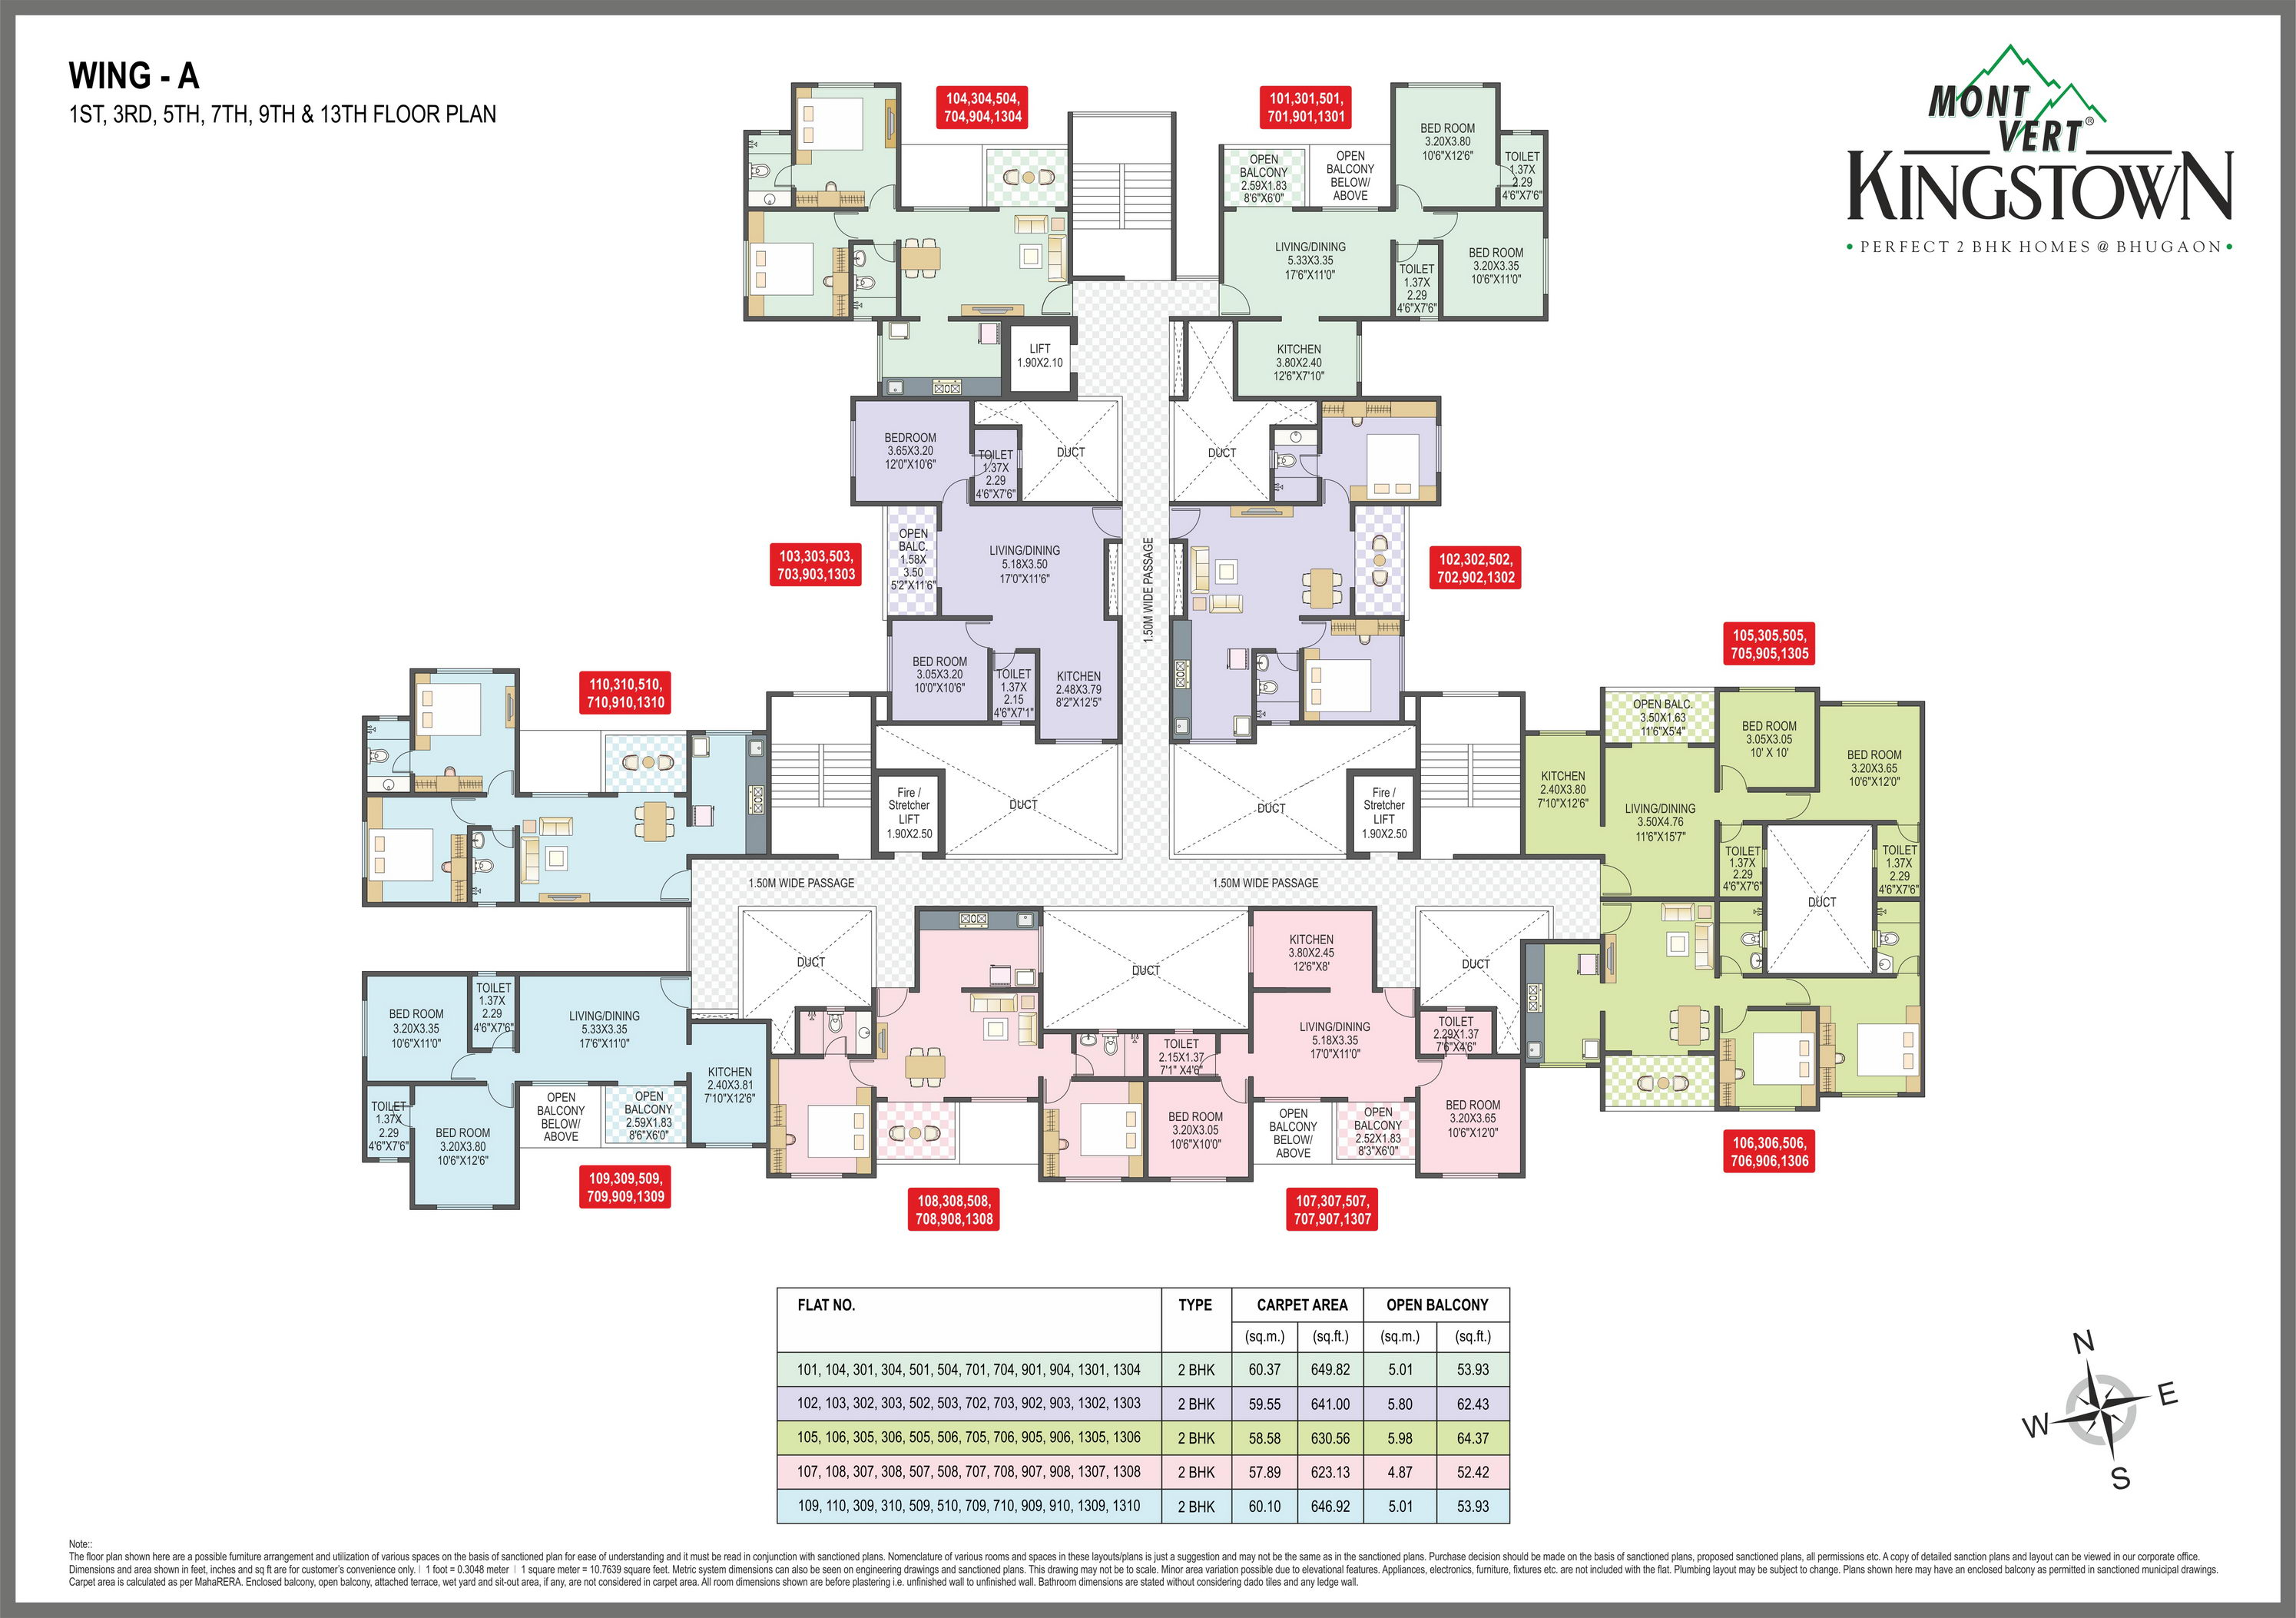 buy-2-bhk-apartments-near-kothrud-pune-montvert-kingstown- odd-floors